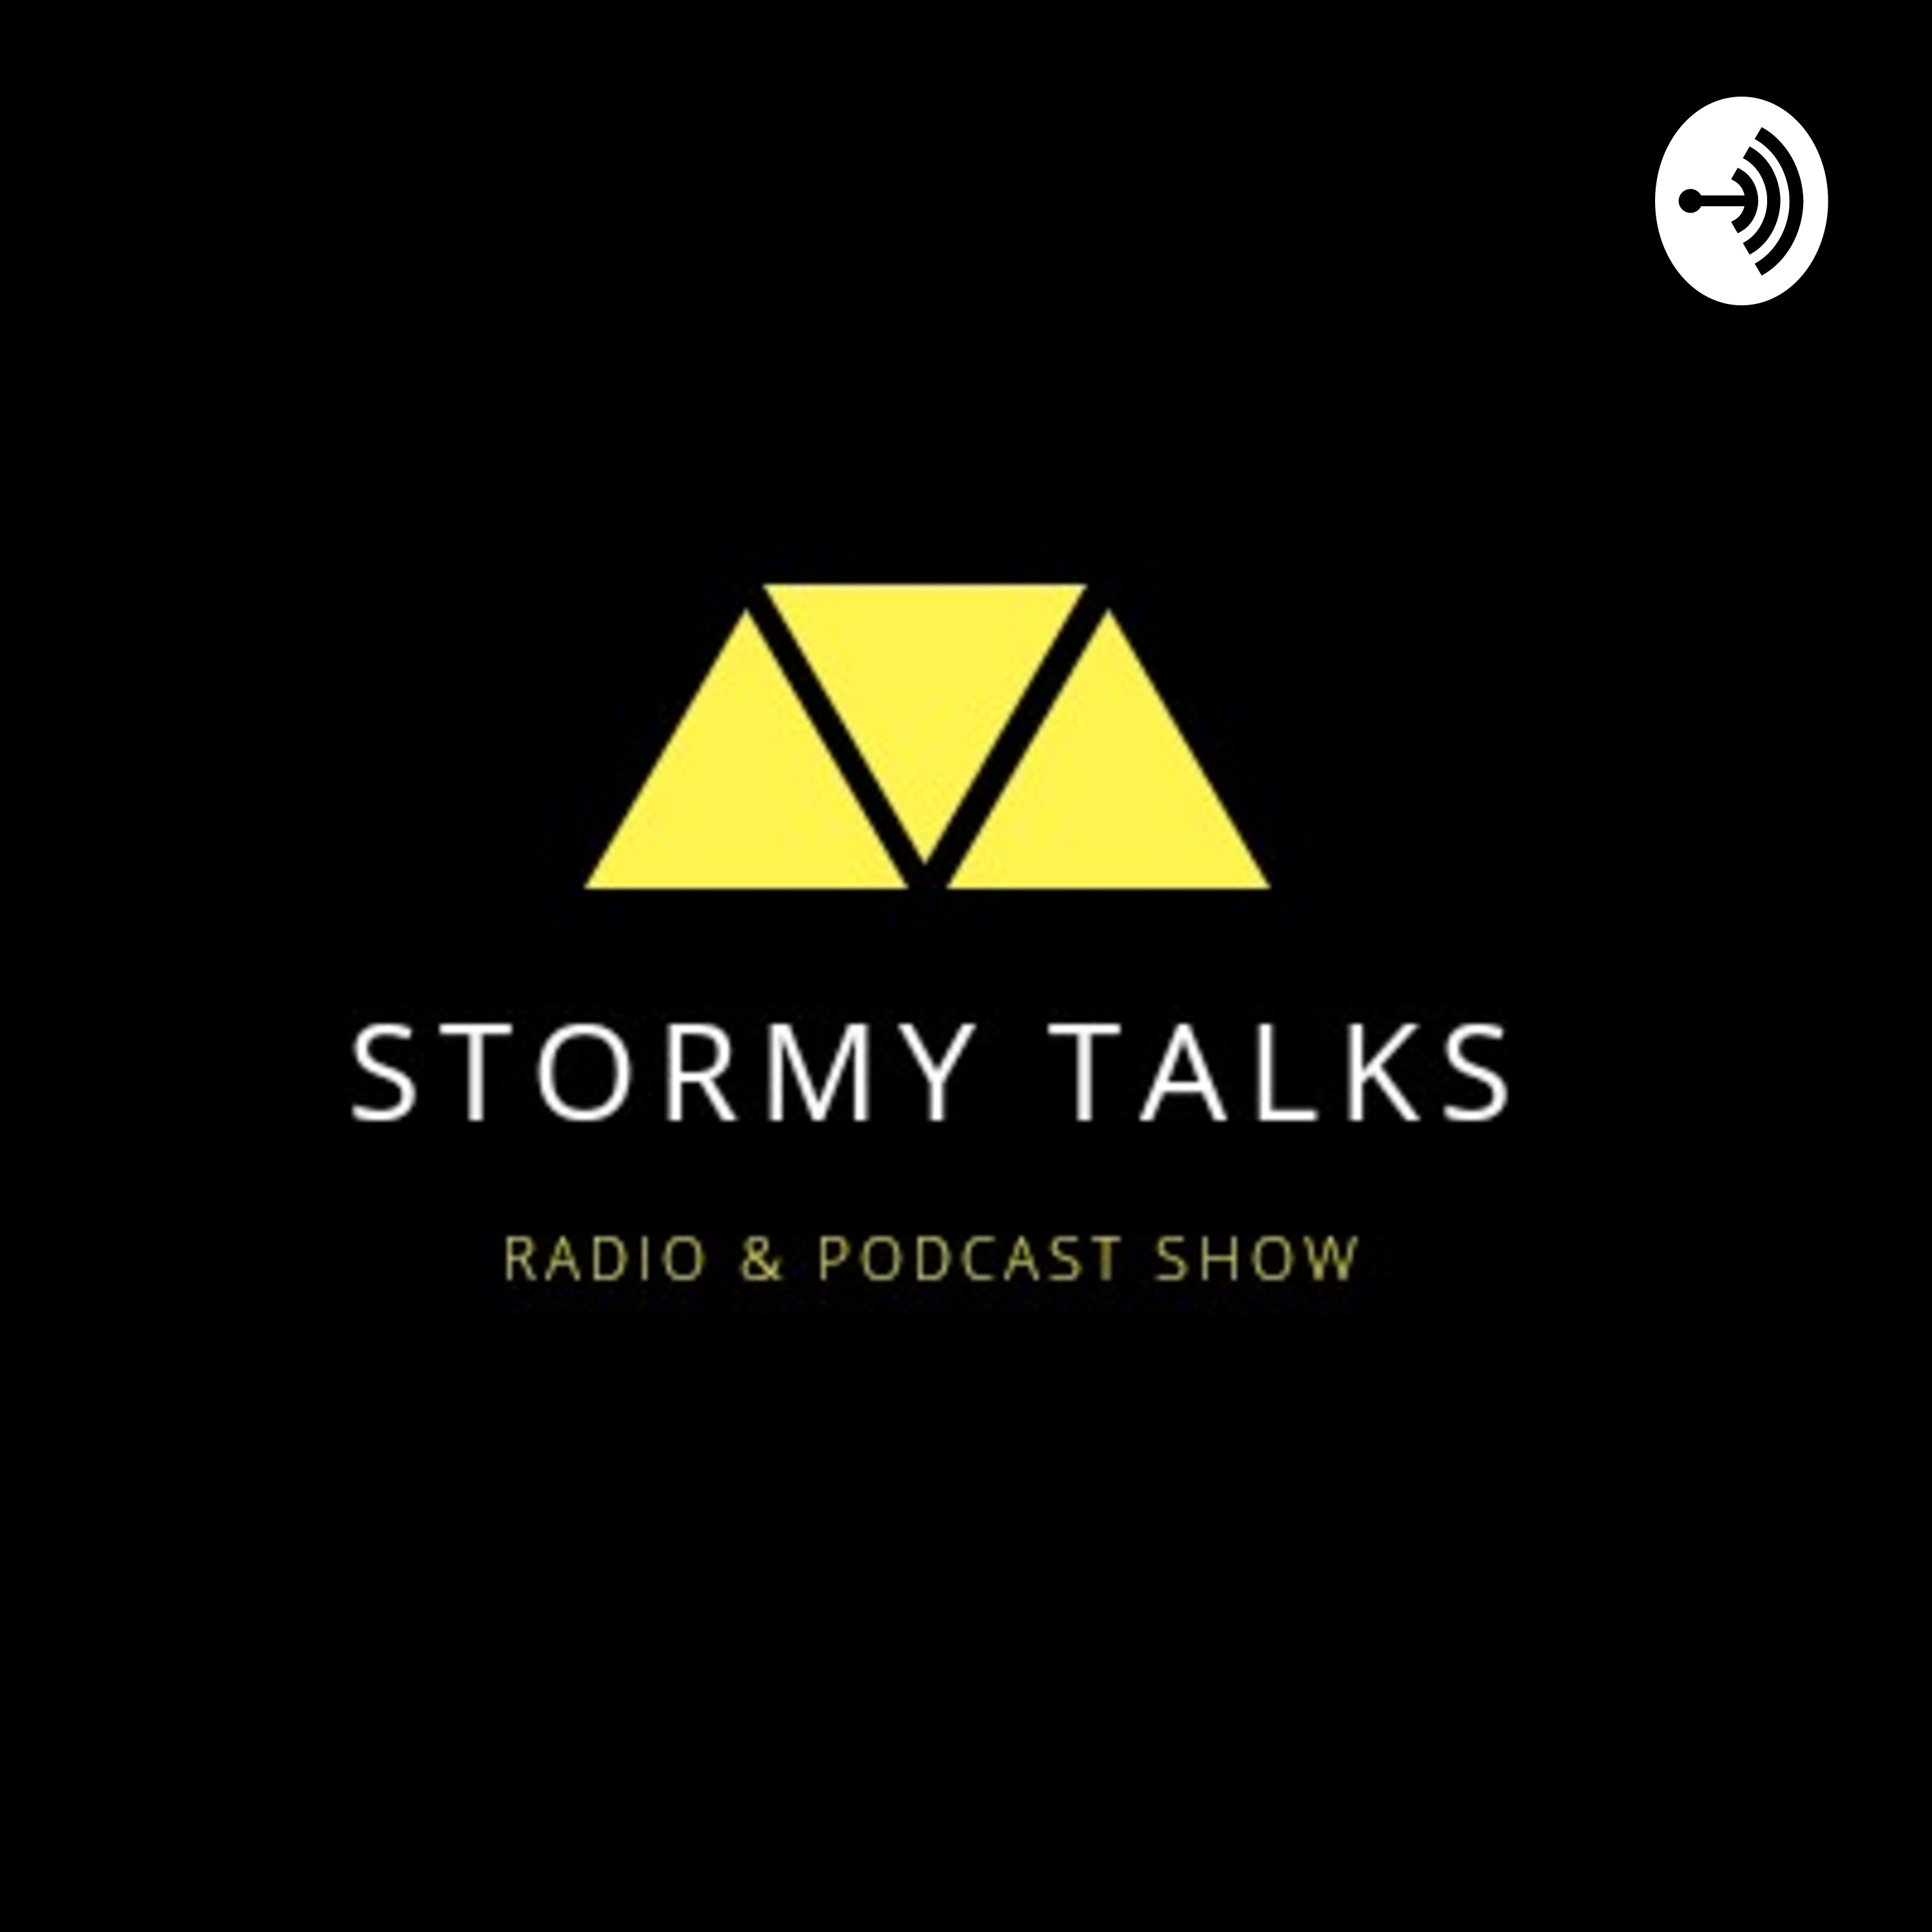 Introduction - Stormy Talks